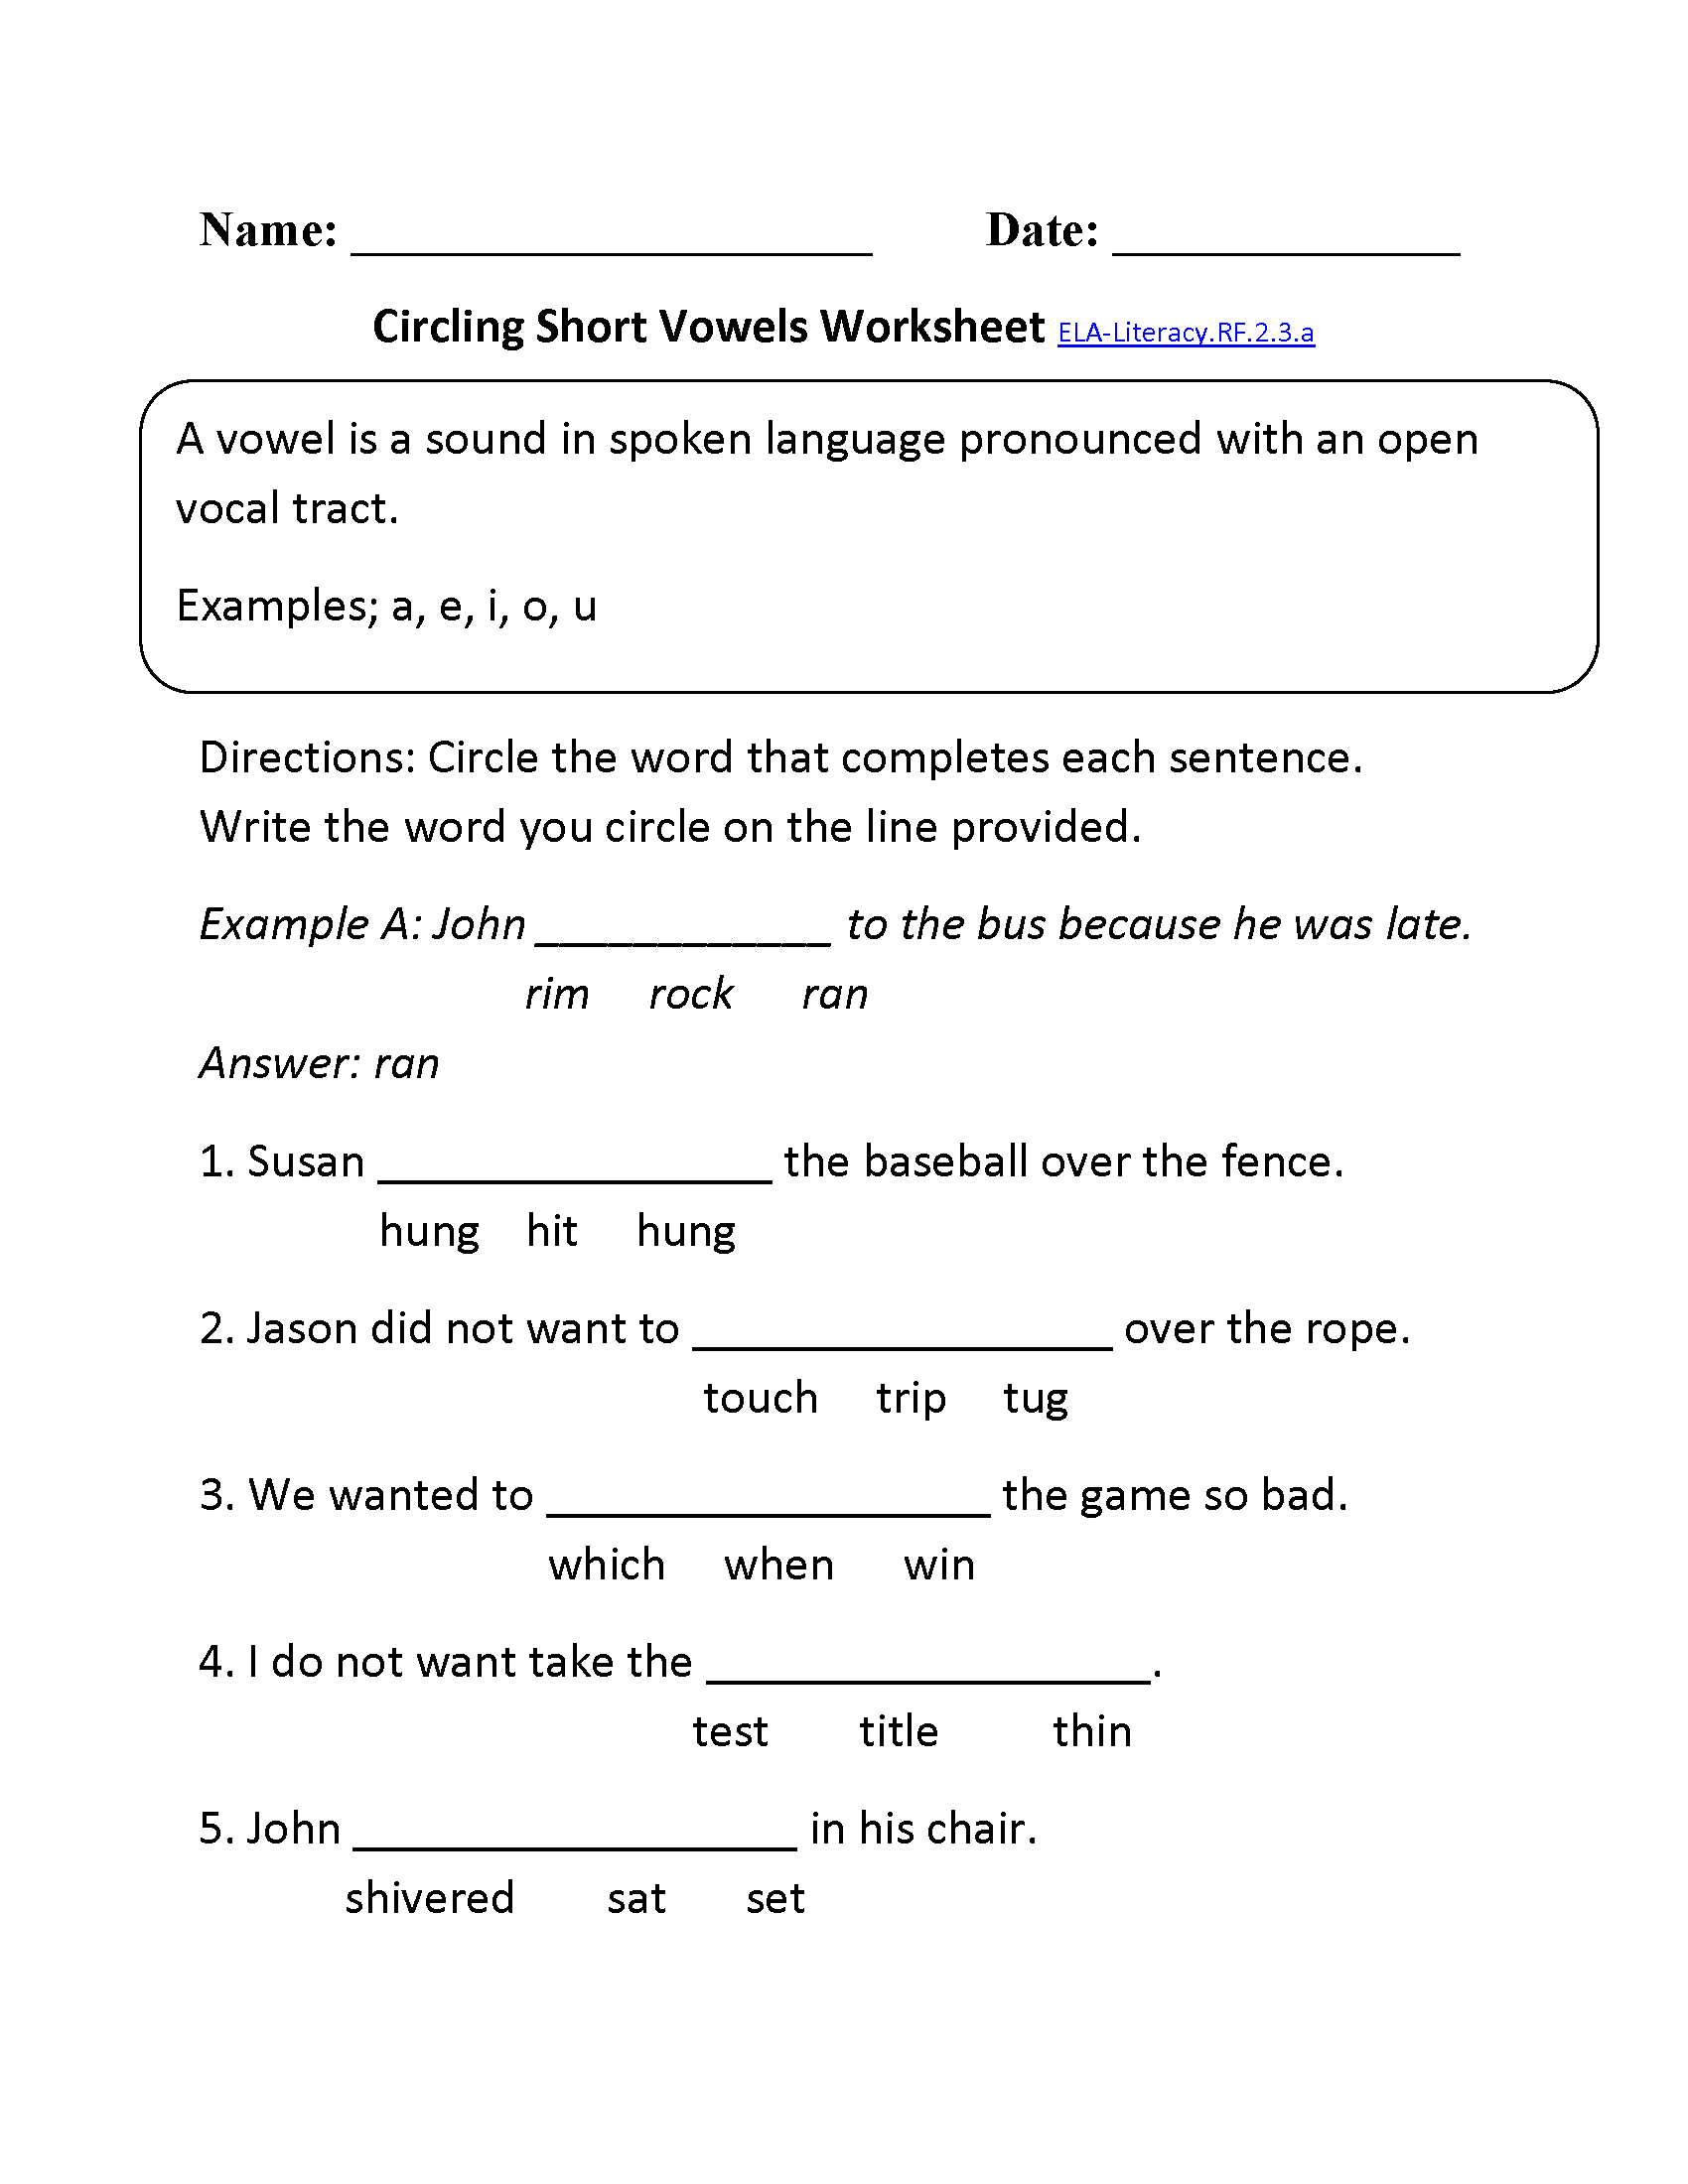 Worksheets Second Grade Phonics Worksheets 2nd grade common core reading foundational skills worksheets short vowels ela literacy rf 2 3 a skills